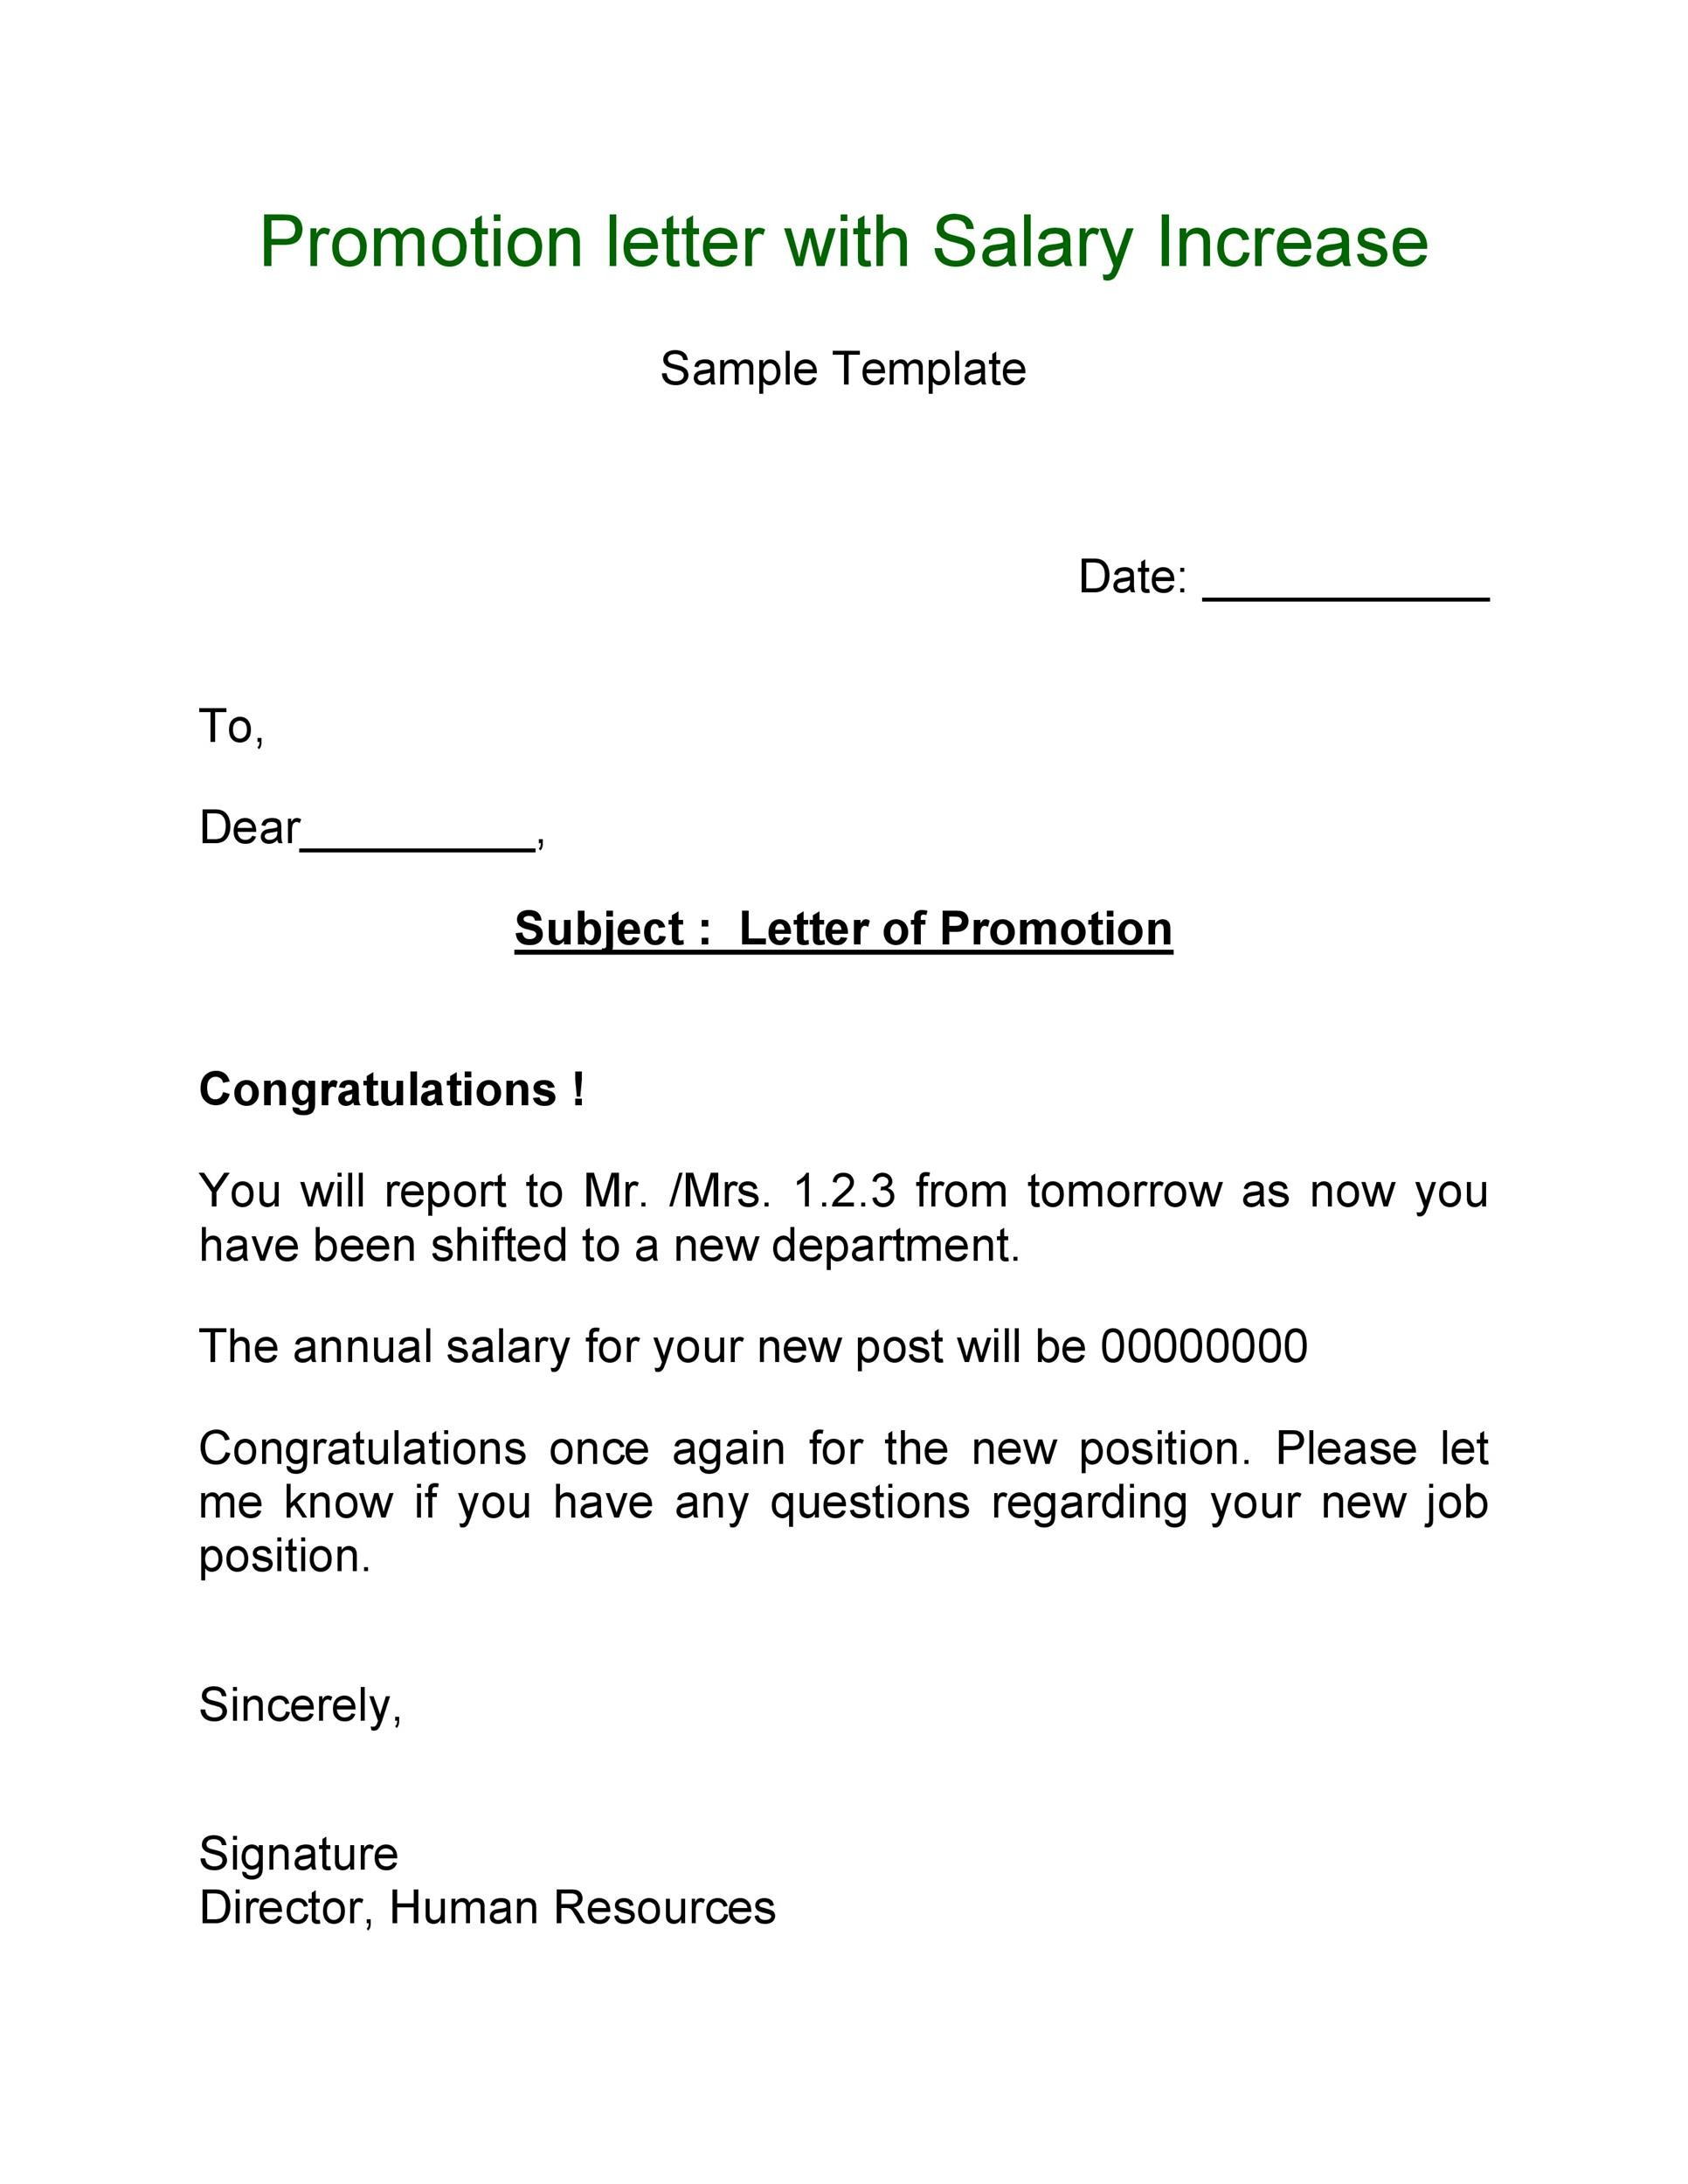 Job Promotion Request Letter from templatelab.com